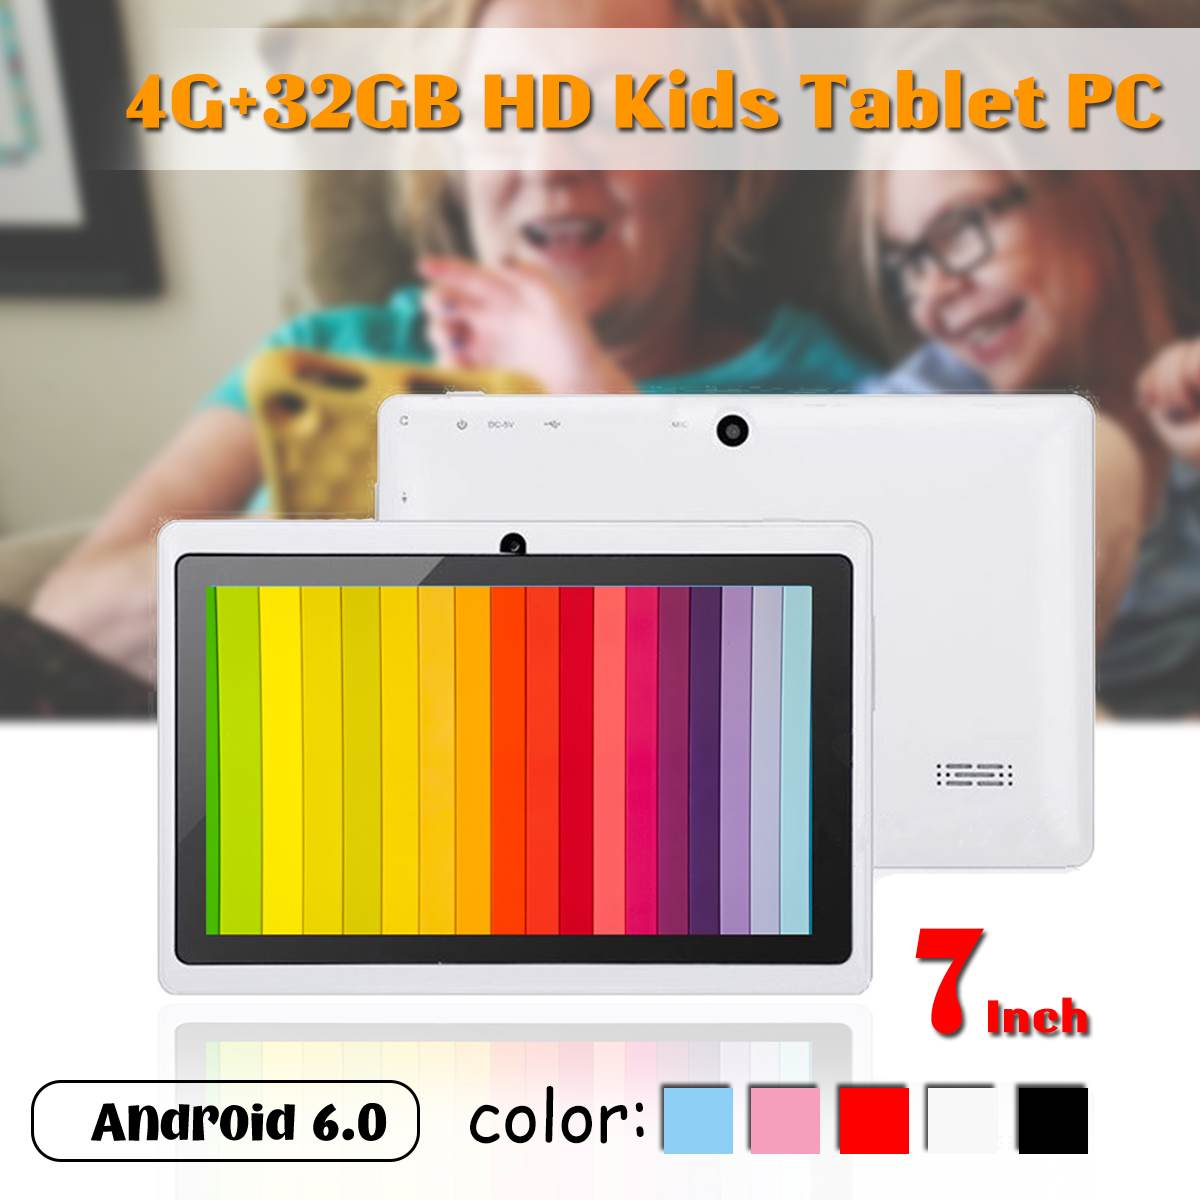 Hot Sales LEORY 7 Inch HD Kids Tablet PC 4G+32GB Android 6.0 Quad Core 4000mAh Children Pad WIFI Bluetooth Navigation Tab